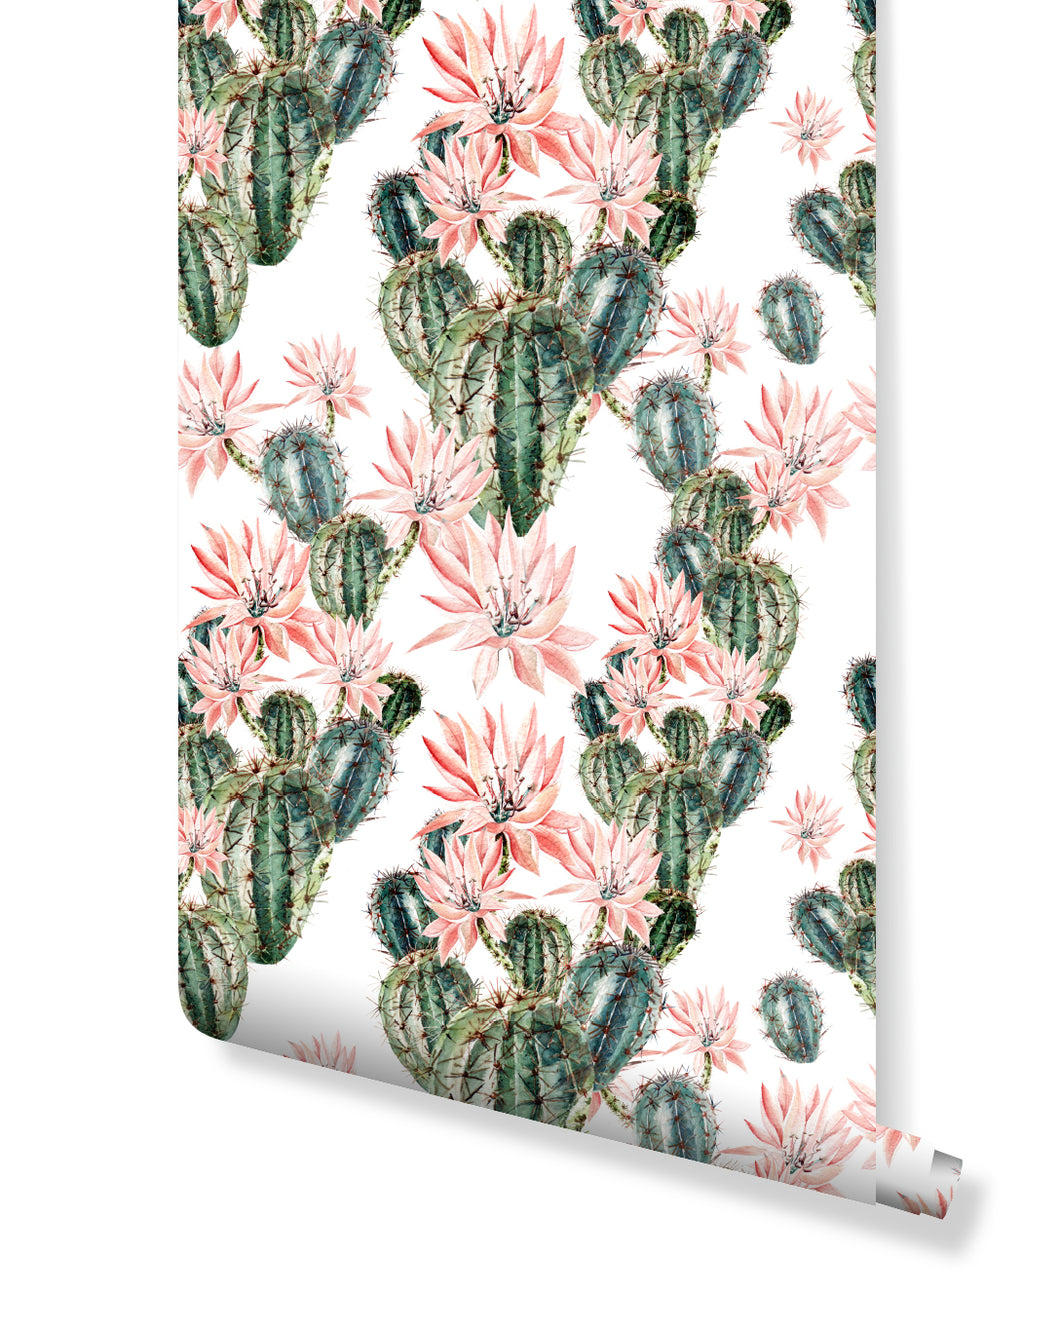 Cactus Temporary Wallpaper Floral Removable Peel and Stick Wall Decal with Colorful Flowers Succulents Cacti Wall Art Sticker CC052